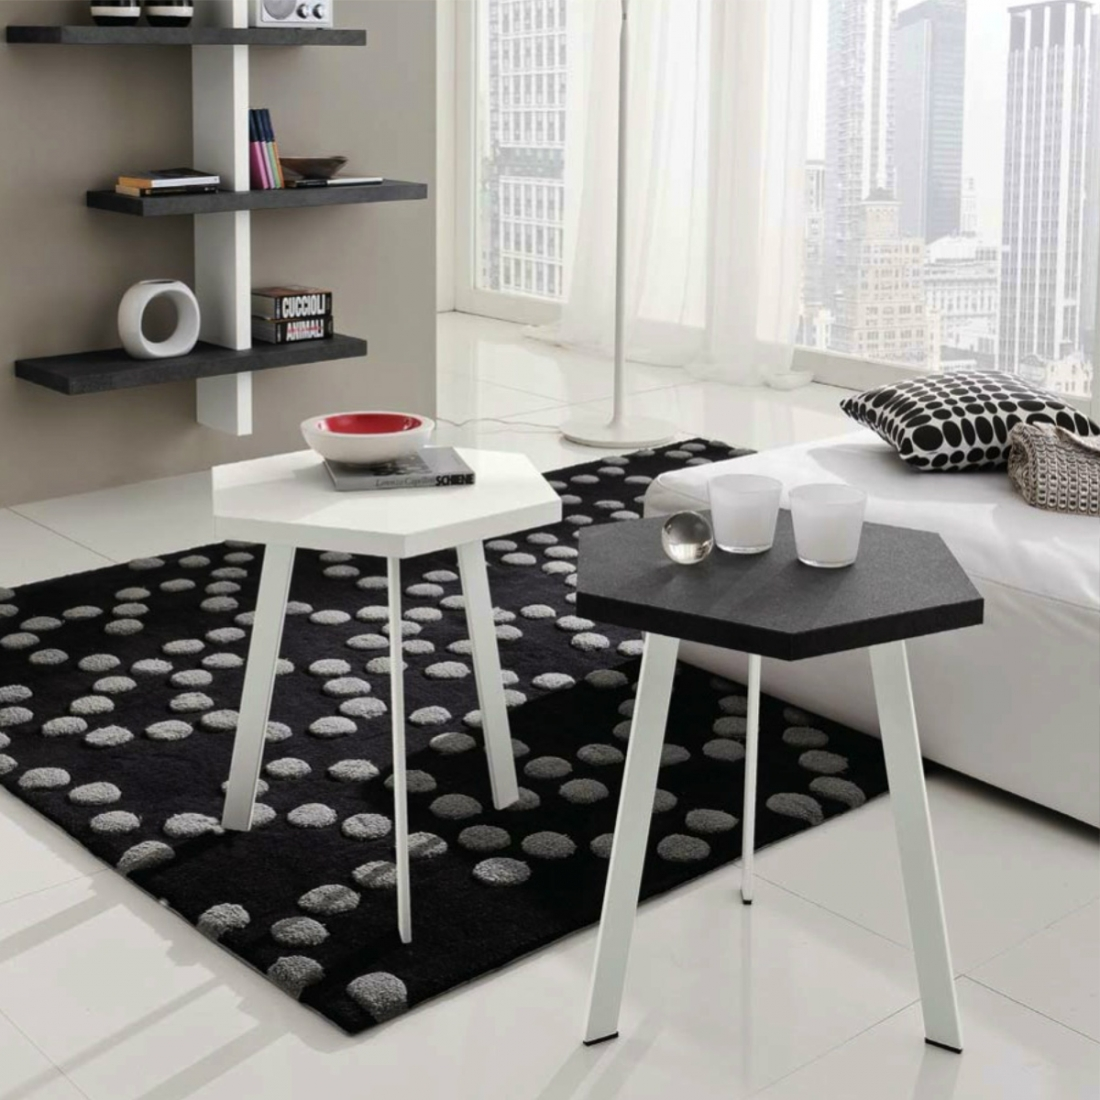 table d appoint haute design rossella. Black Bedroom Furniture Sets. Home Design Ideas